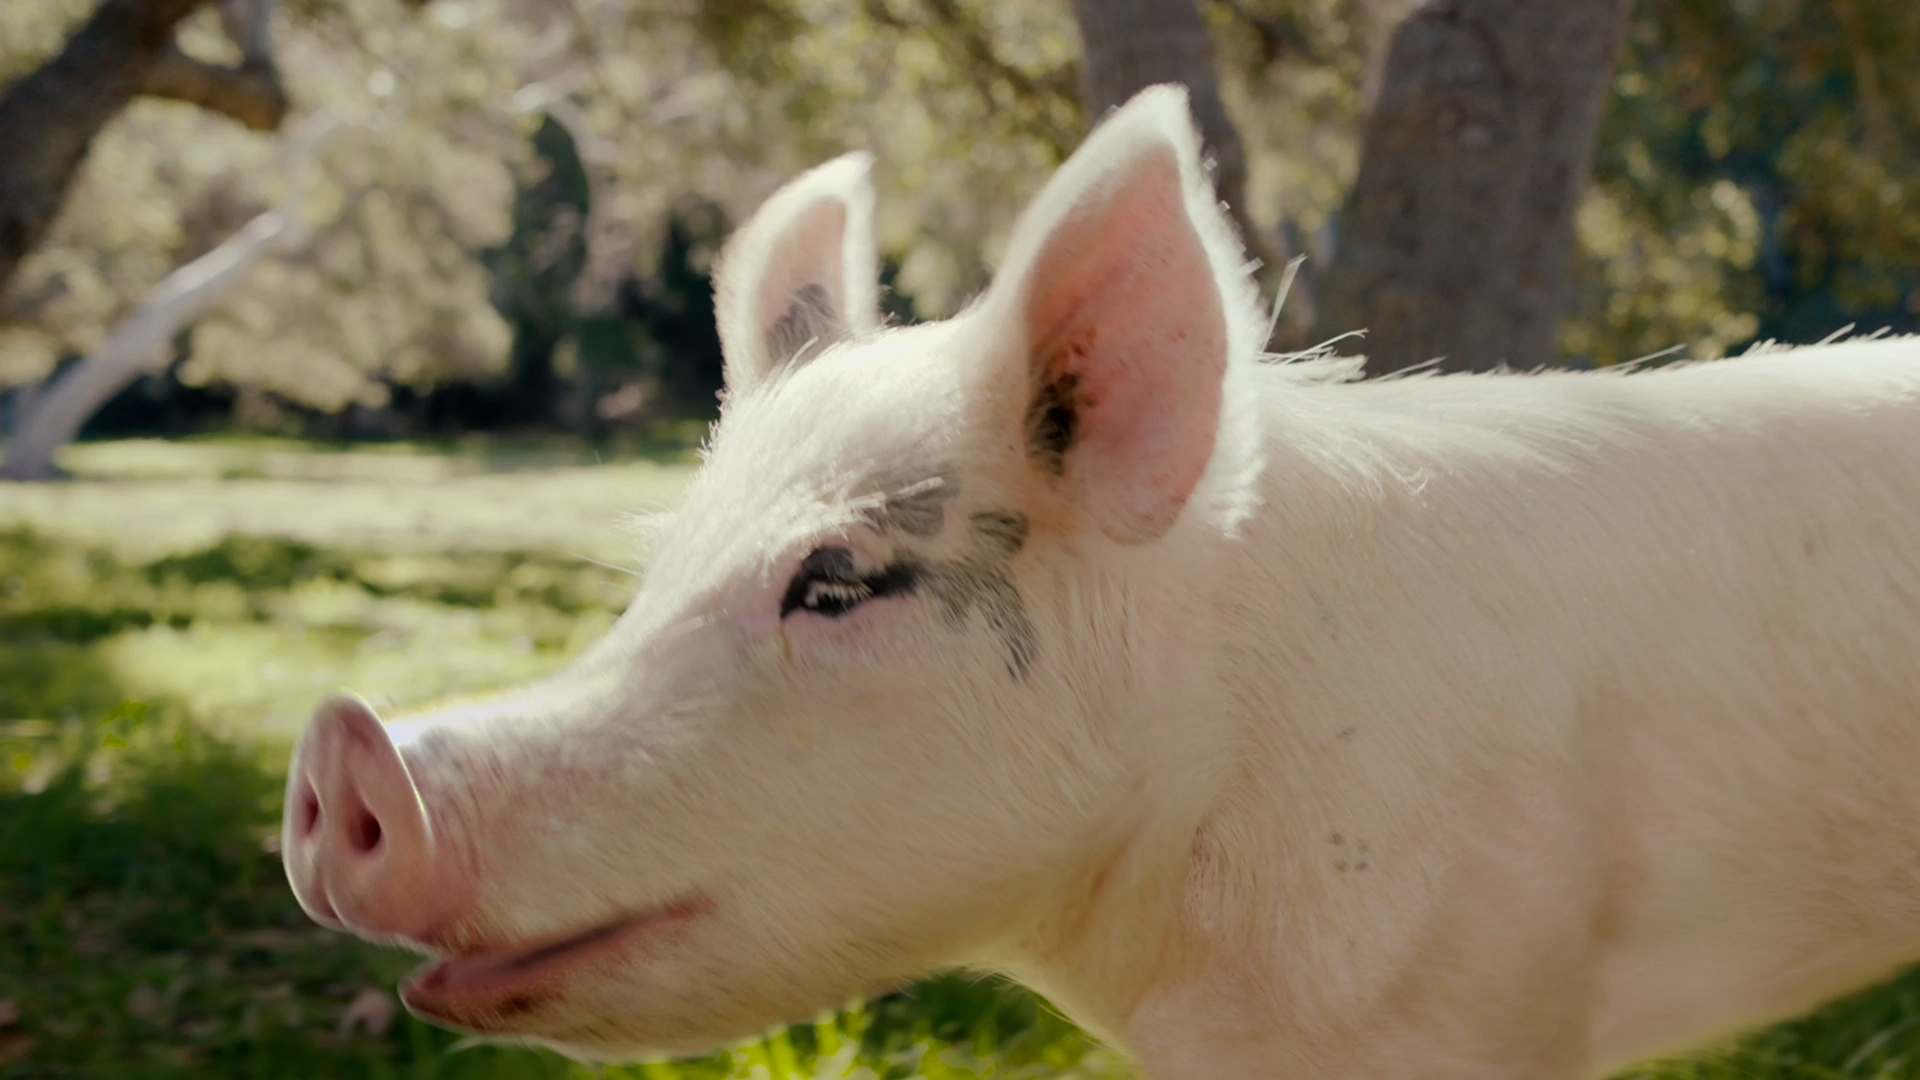 outdoor cow grass animal mammal pig white standing rabbit suidae domestic pig dog snout close staring